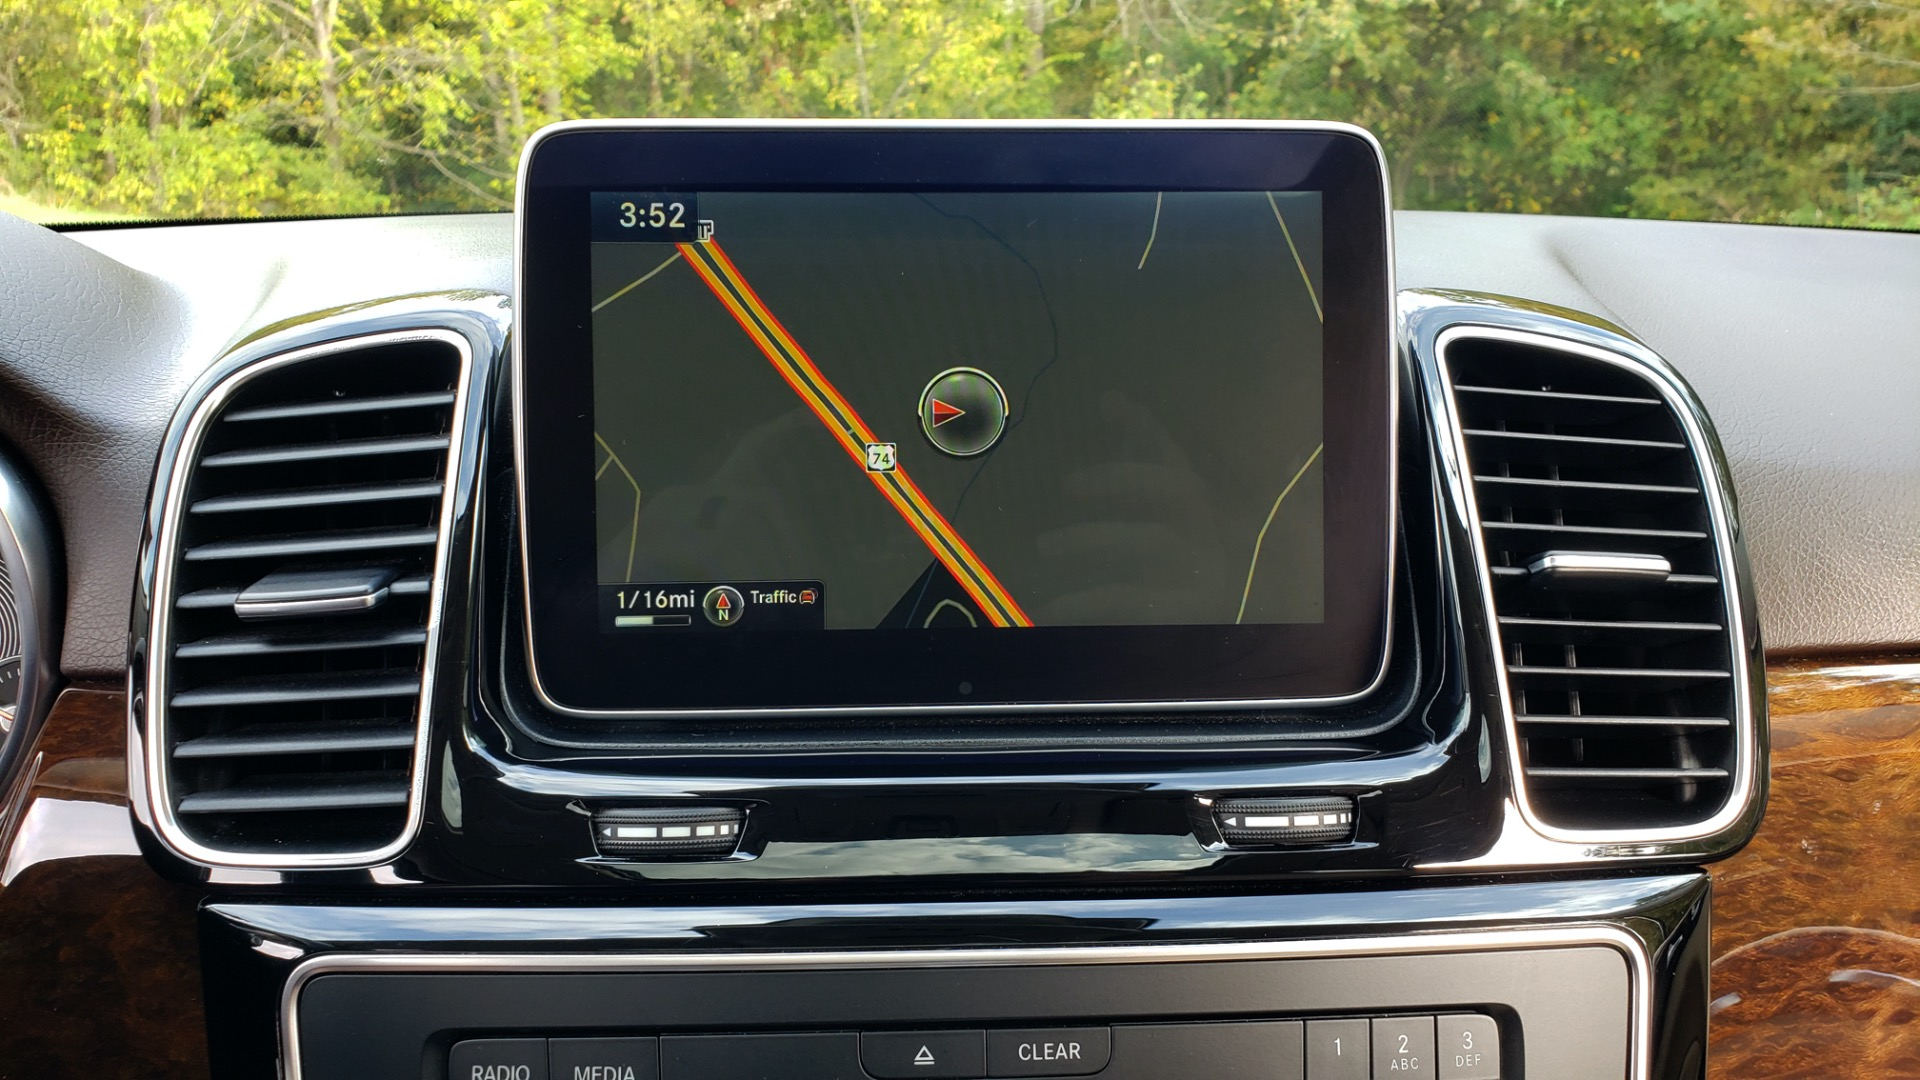 Used 2016 Mercedes-Benz GLE 350 PREMIUM / NAV / SUNROOF / BACK-UP CAMERA / LANE TRACKING for sale Sold at Formula Imports in Charlotte NC 28227 54